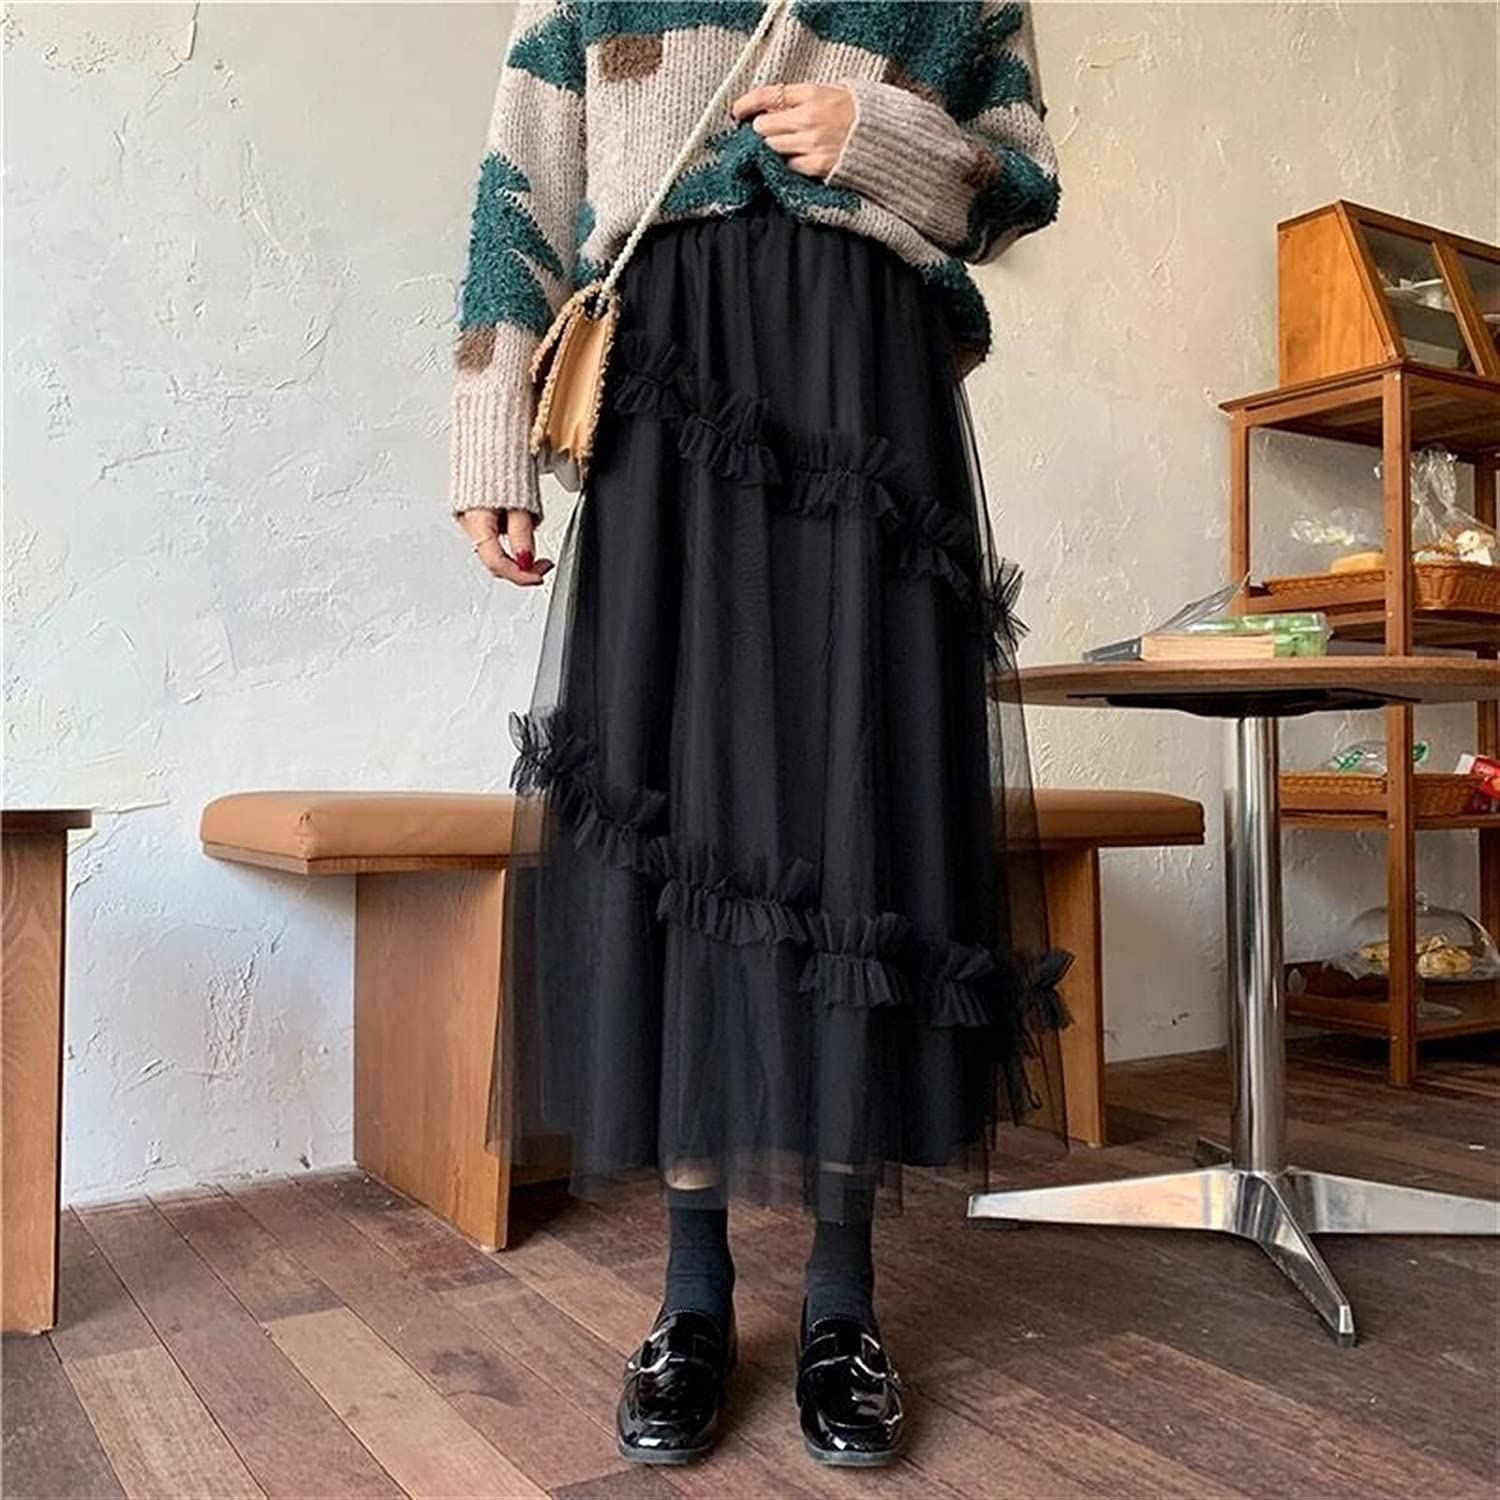 Yunbai List price Limited time for free shipping Women's Elastic Waist Chiffon Skirt Puffy Tulle Petticoat